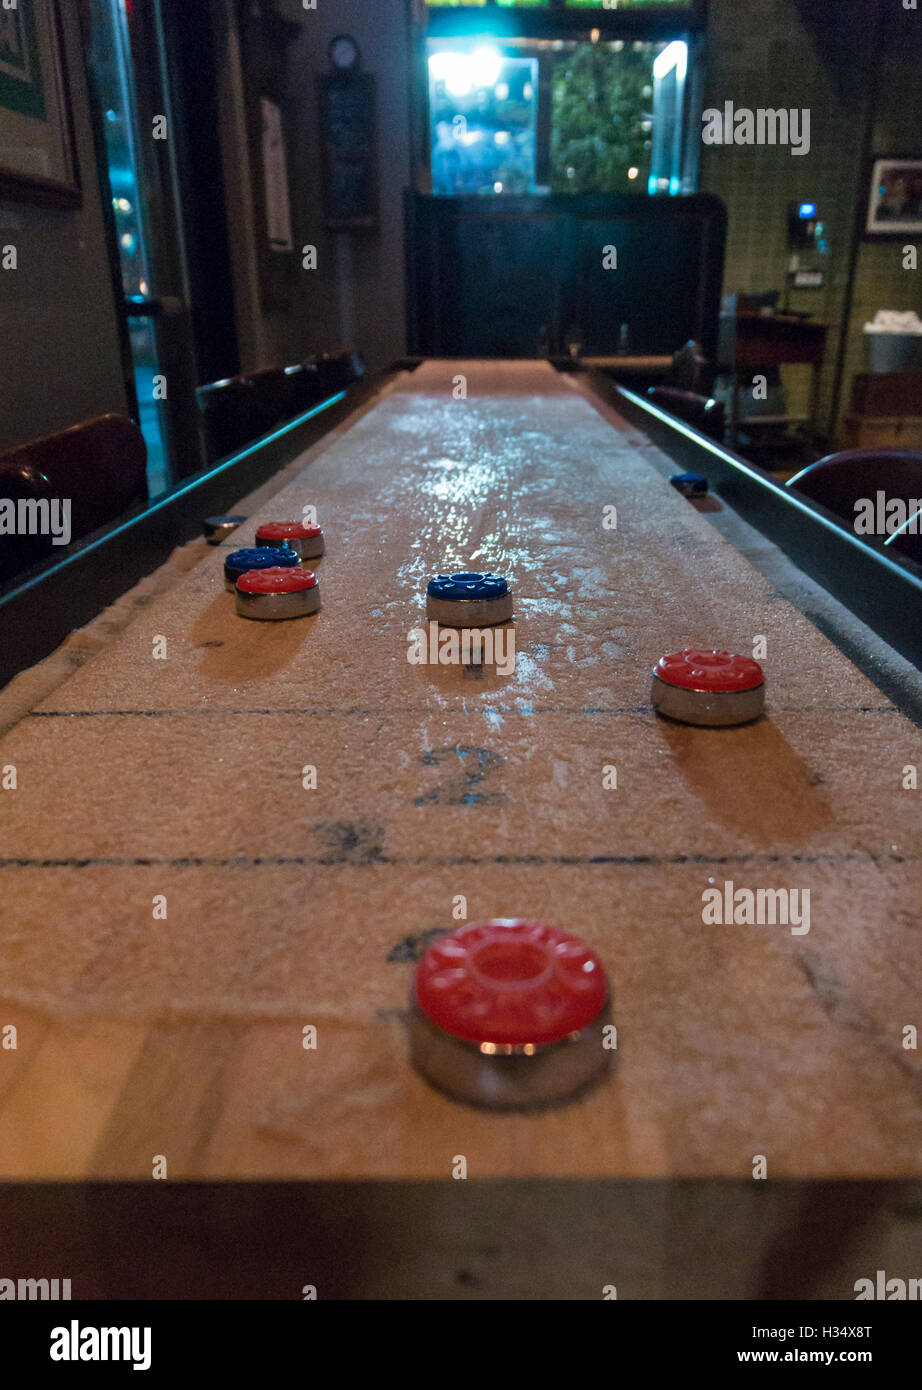 Shuffleboard Bar Game Table With Weights In Play In Dimly Lit Bar In The  USA